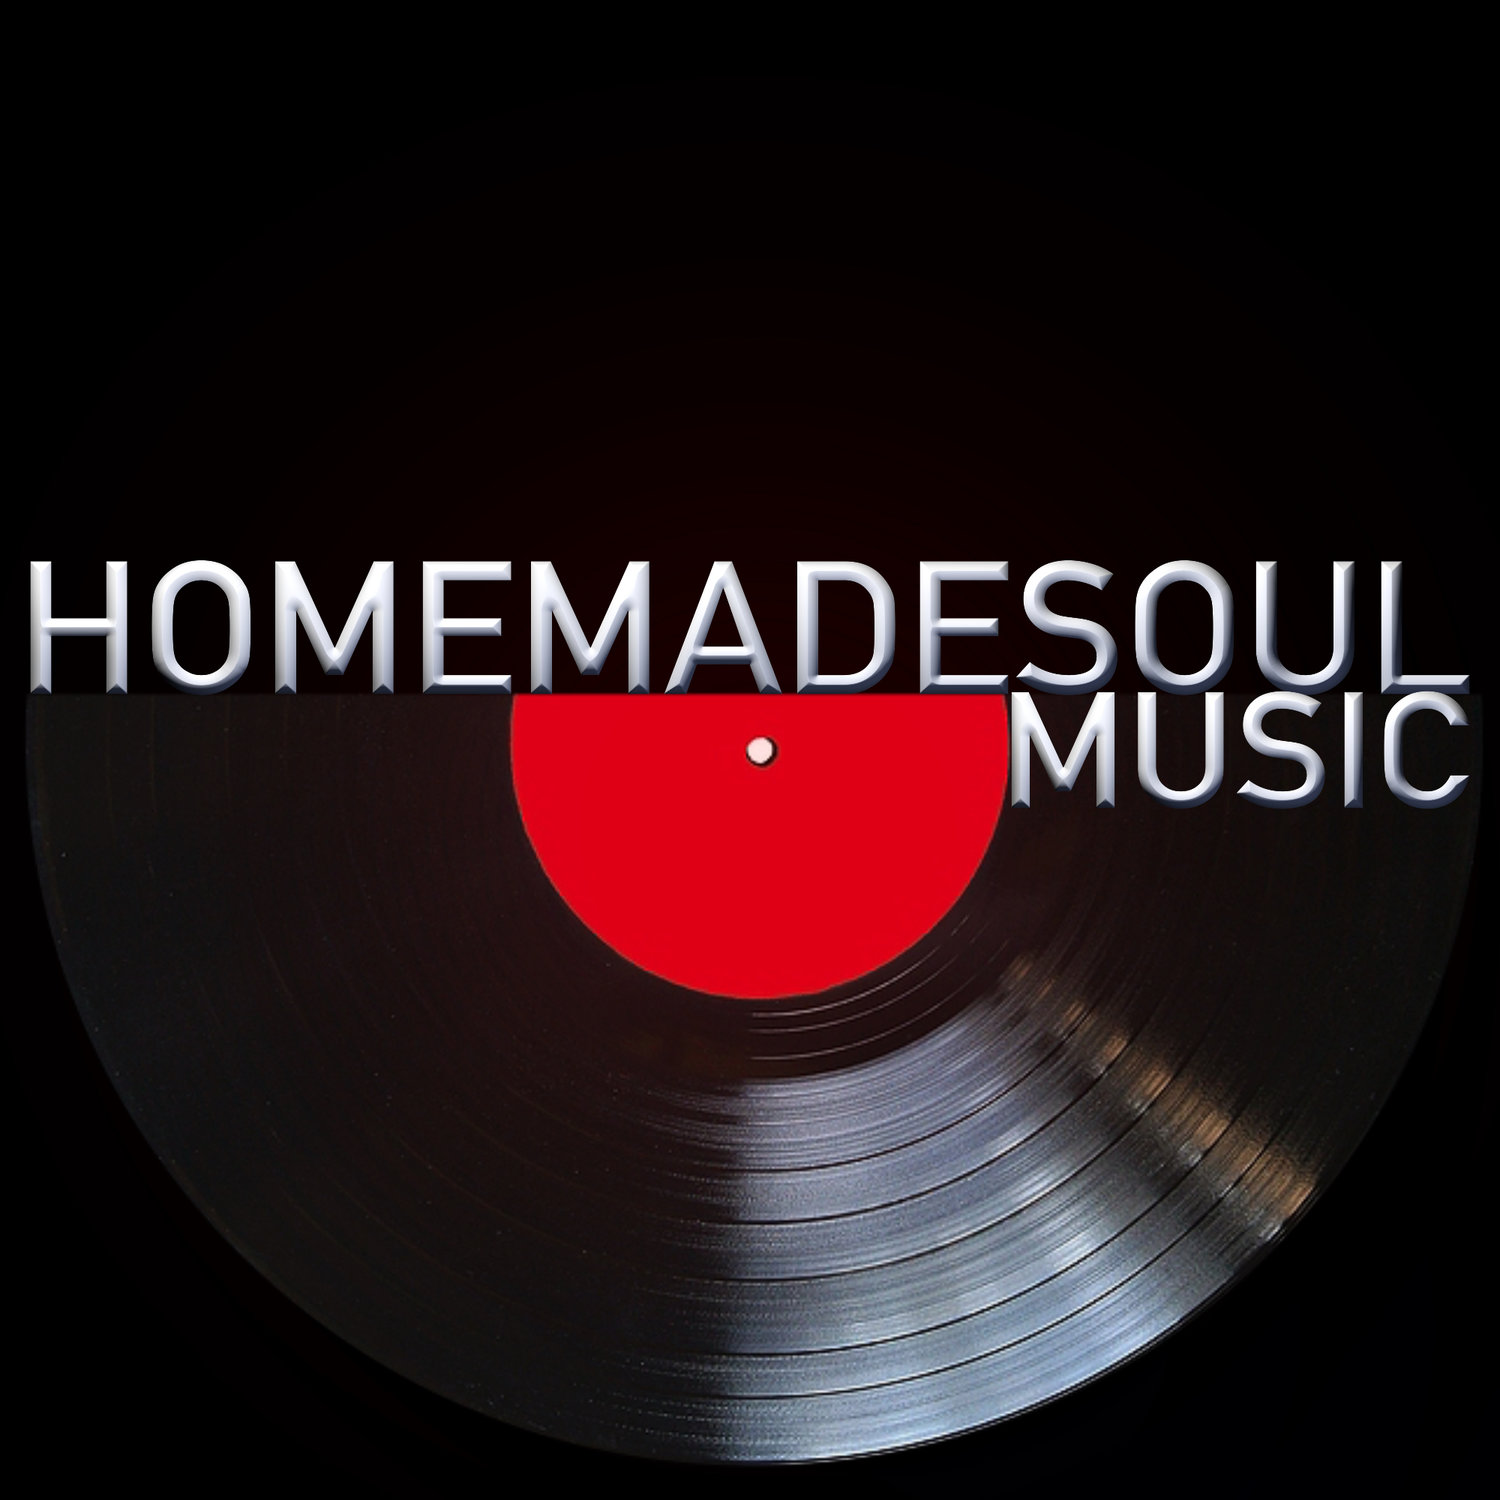 HOMEMADESOUL MUSIC